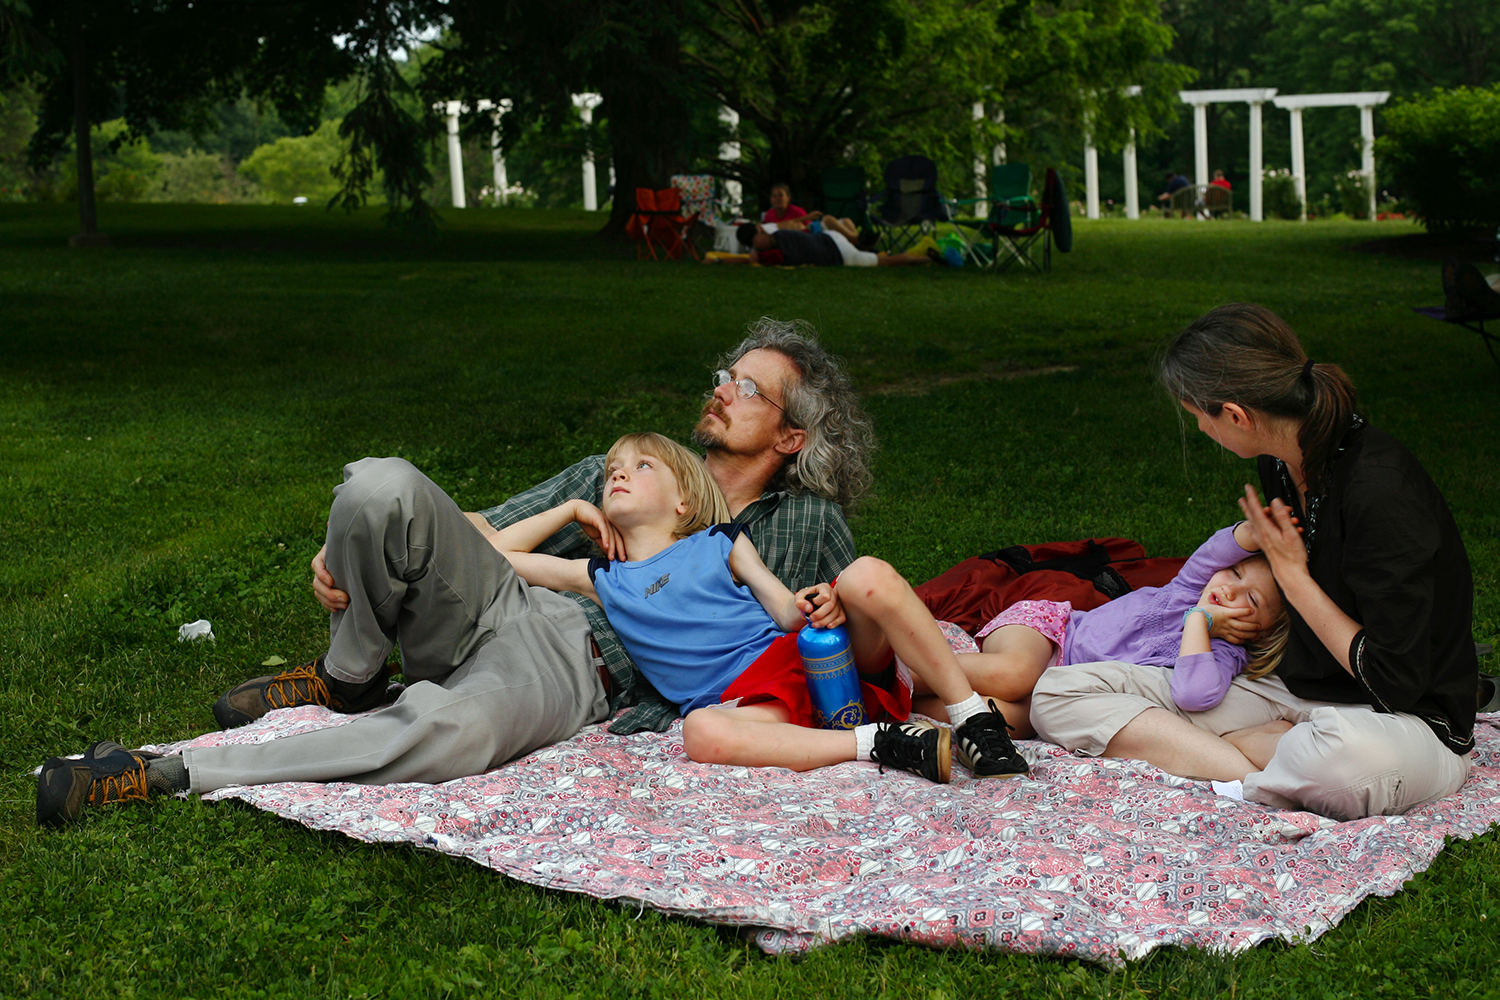 Michael and Angela Goebel-Bain listen to the carillon with their children Rowan, left, and Elsa during the 49th International Carillon Festival Friday, June 11, 2010 at Washington Park. Ted Schurter/The State Journal-Register